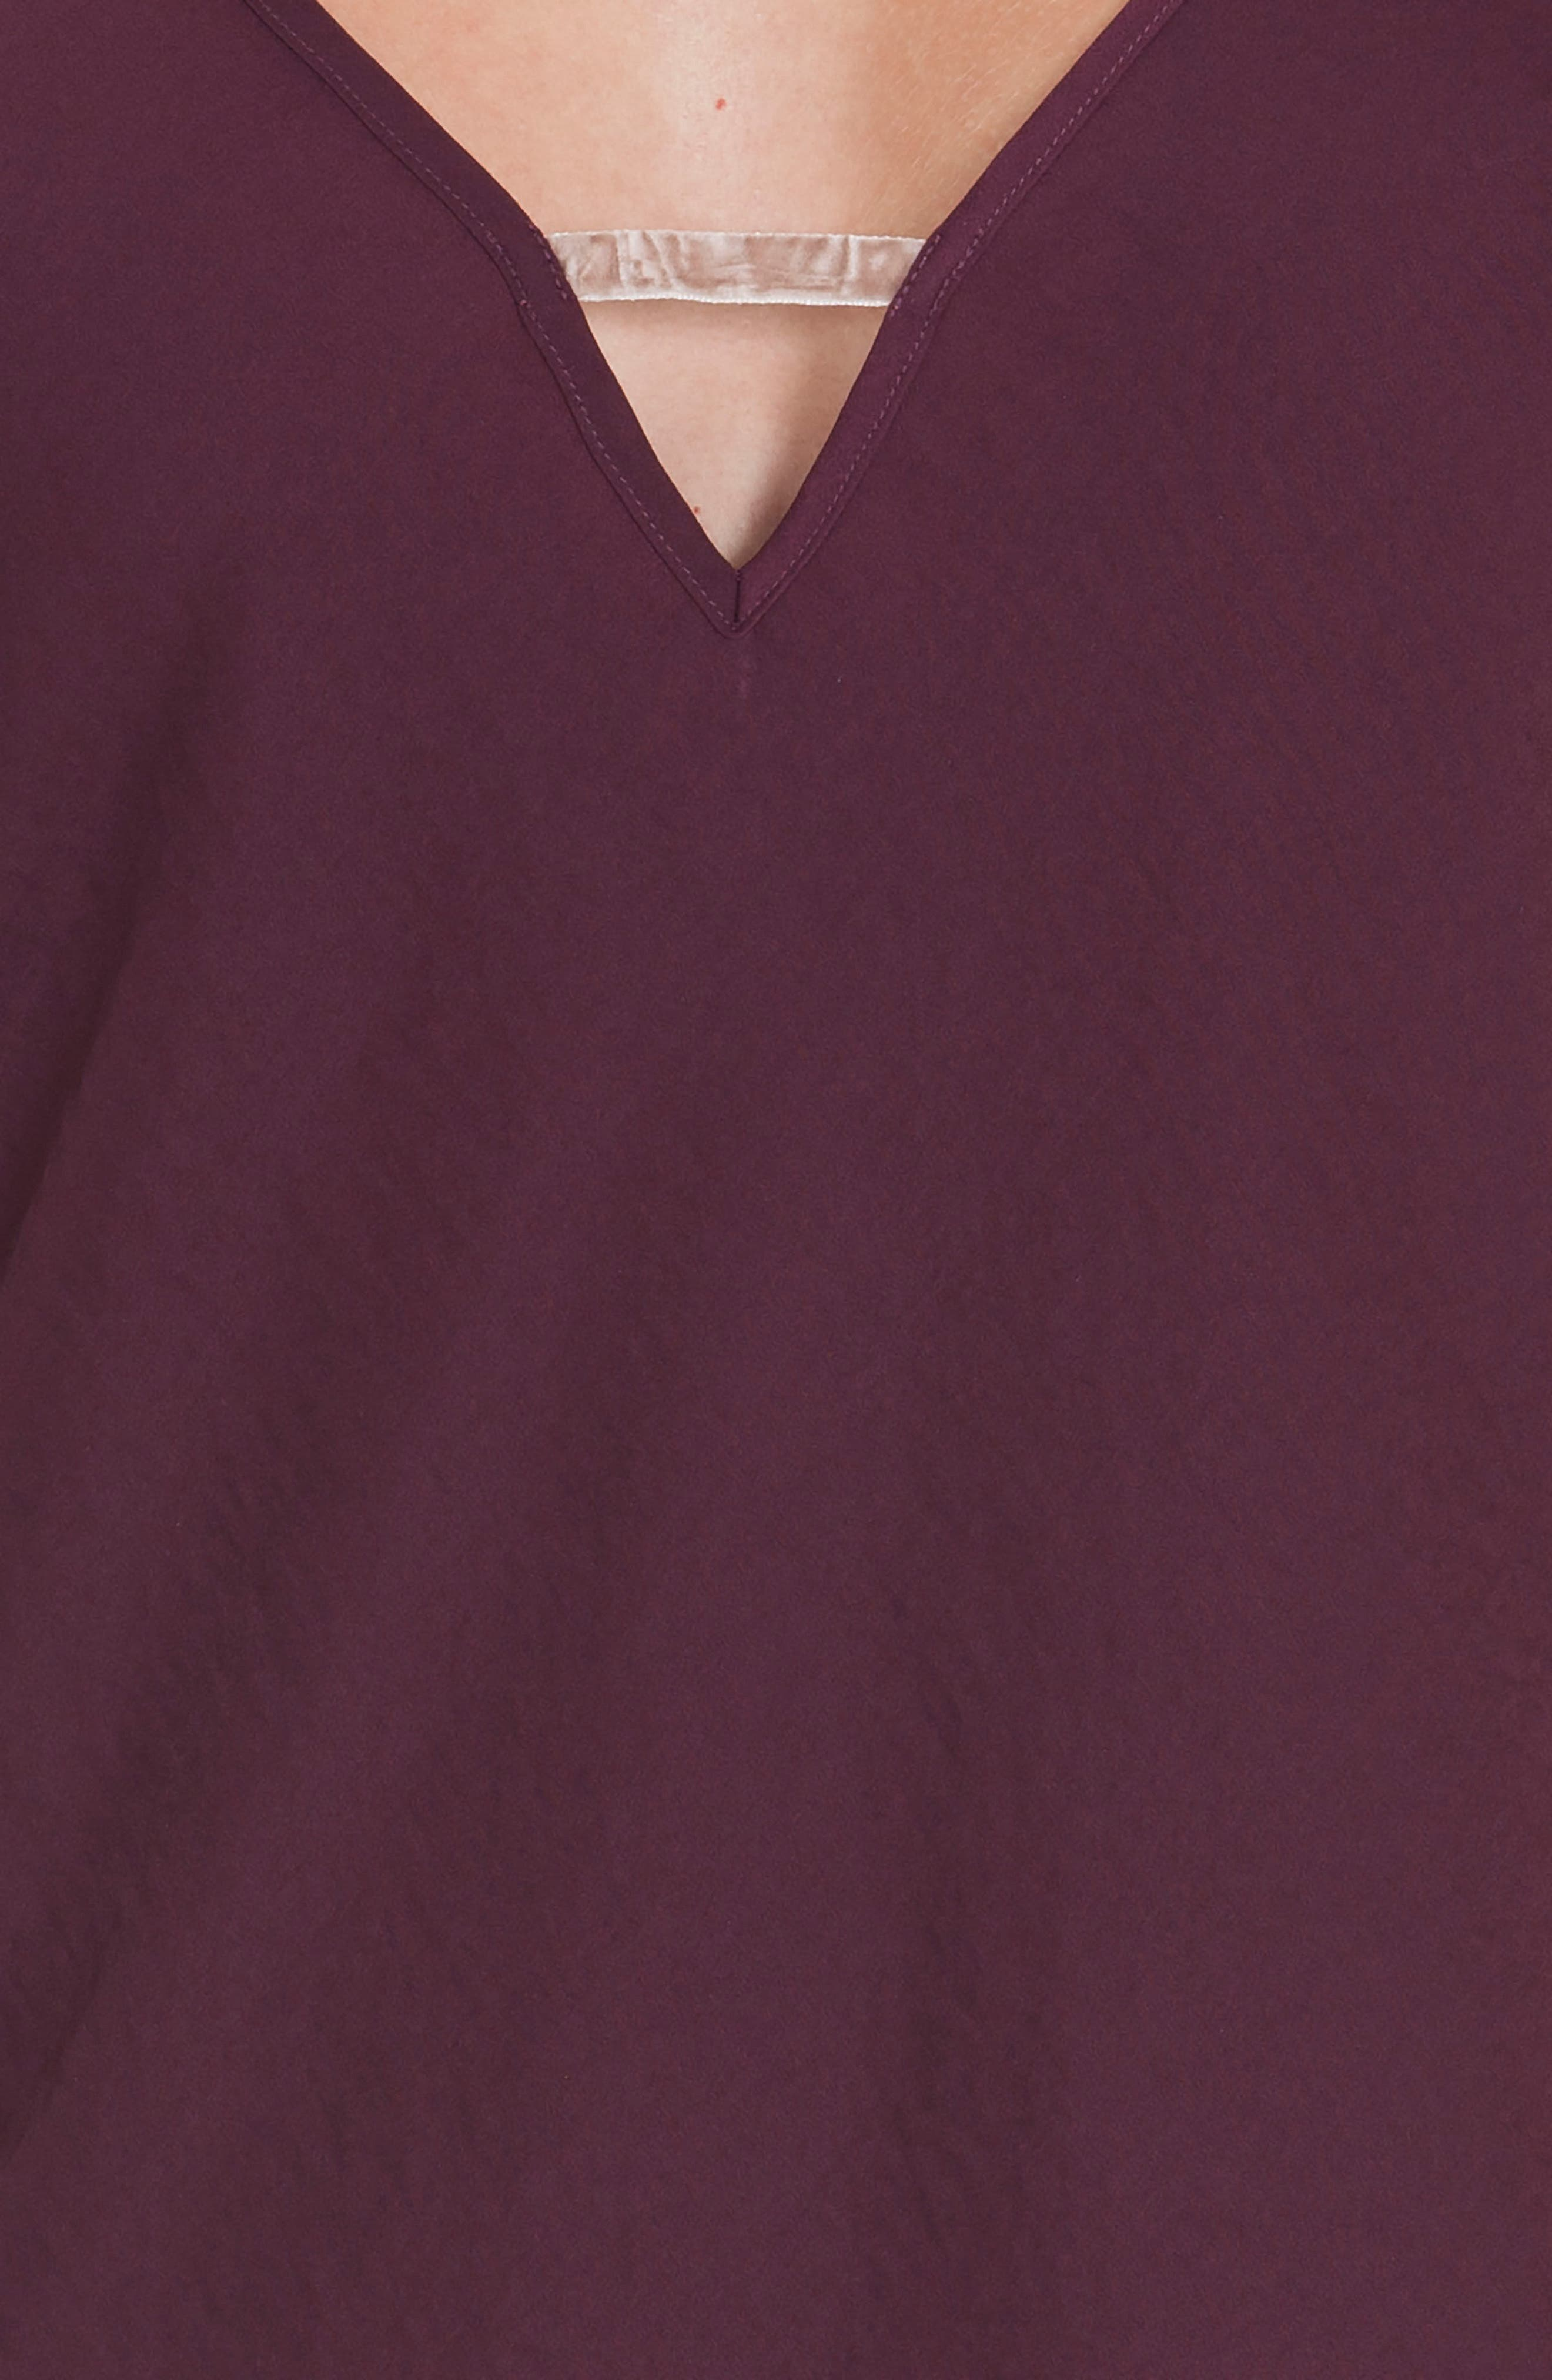 Satin Nightgown,                             Alternate thumbnail 5, color,                             Wine